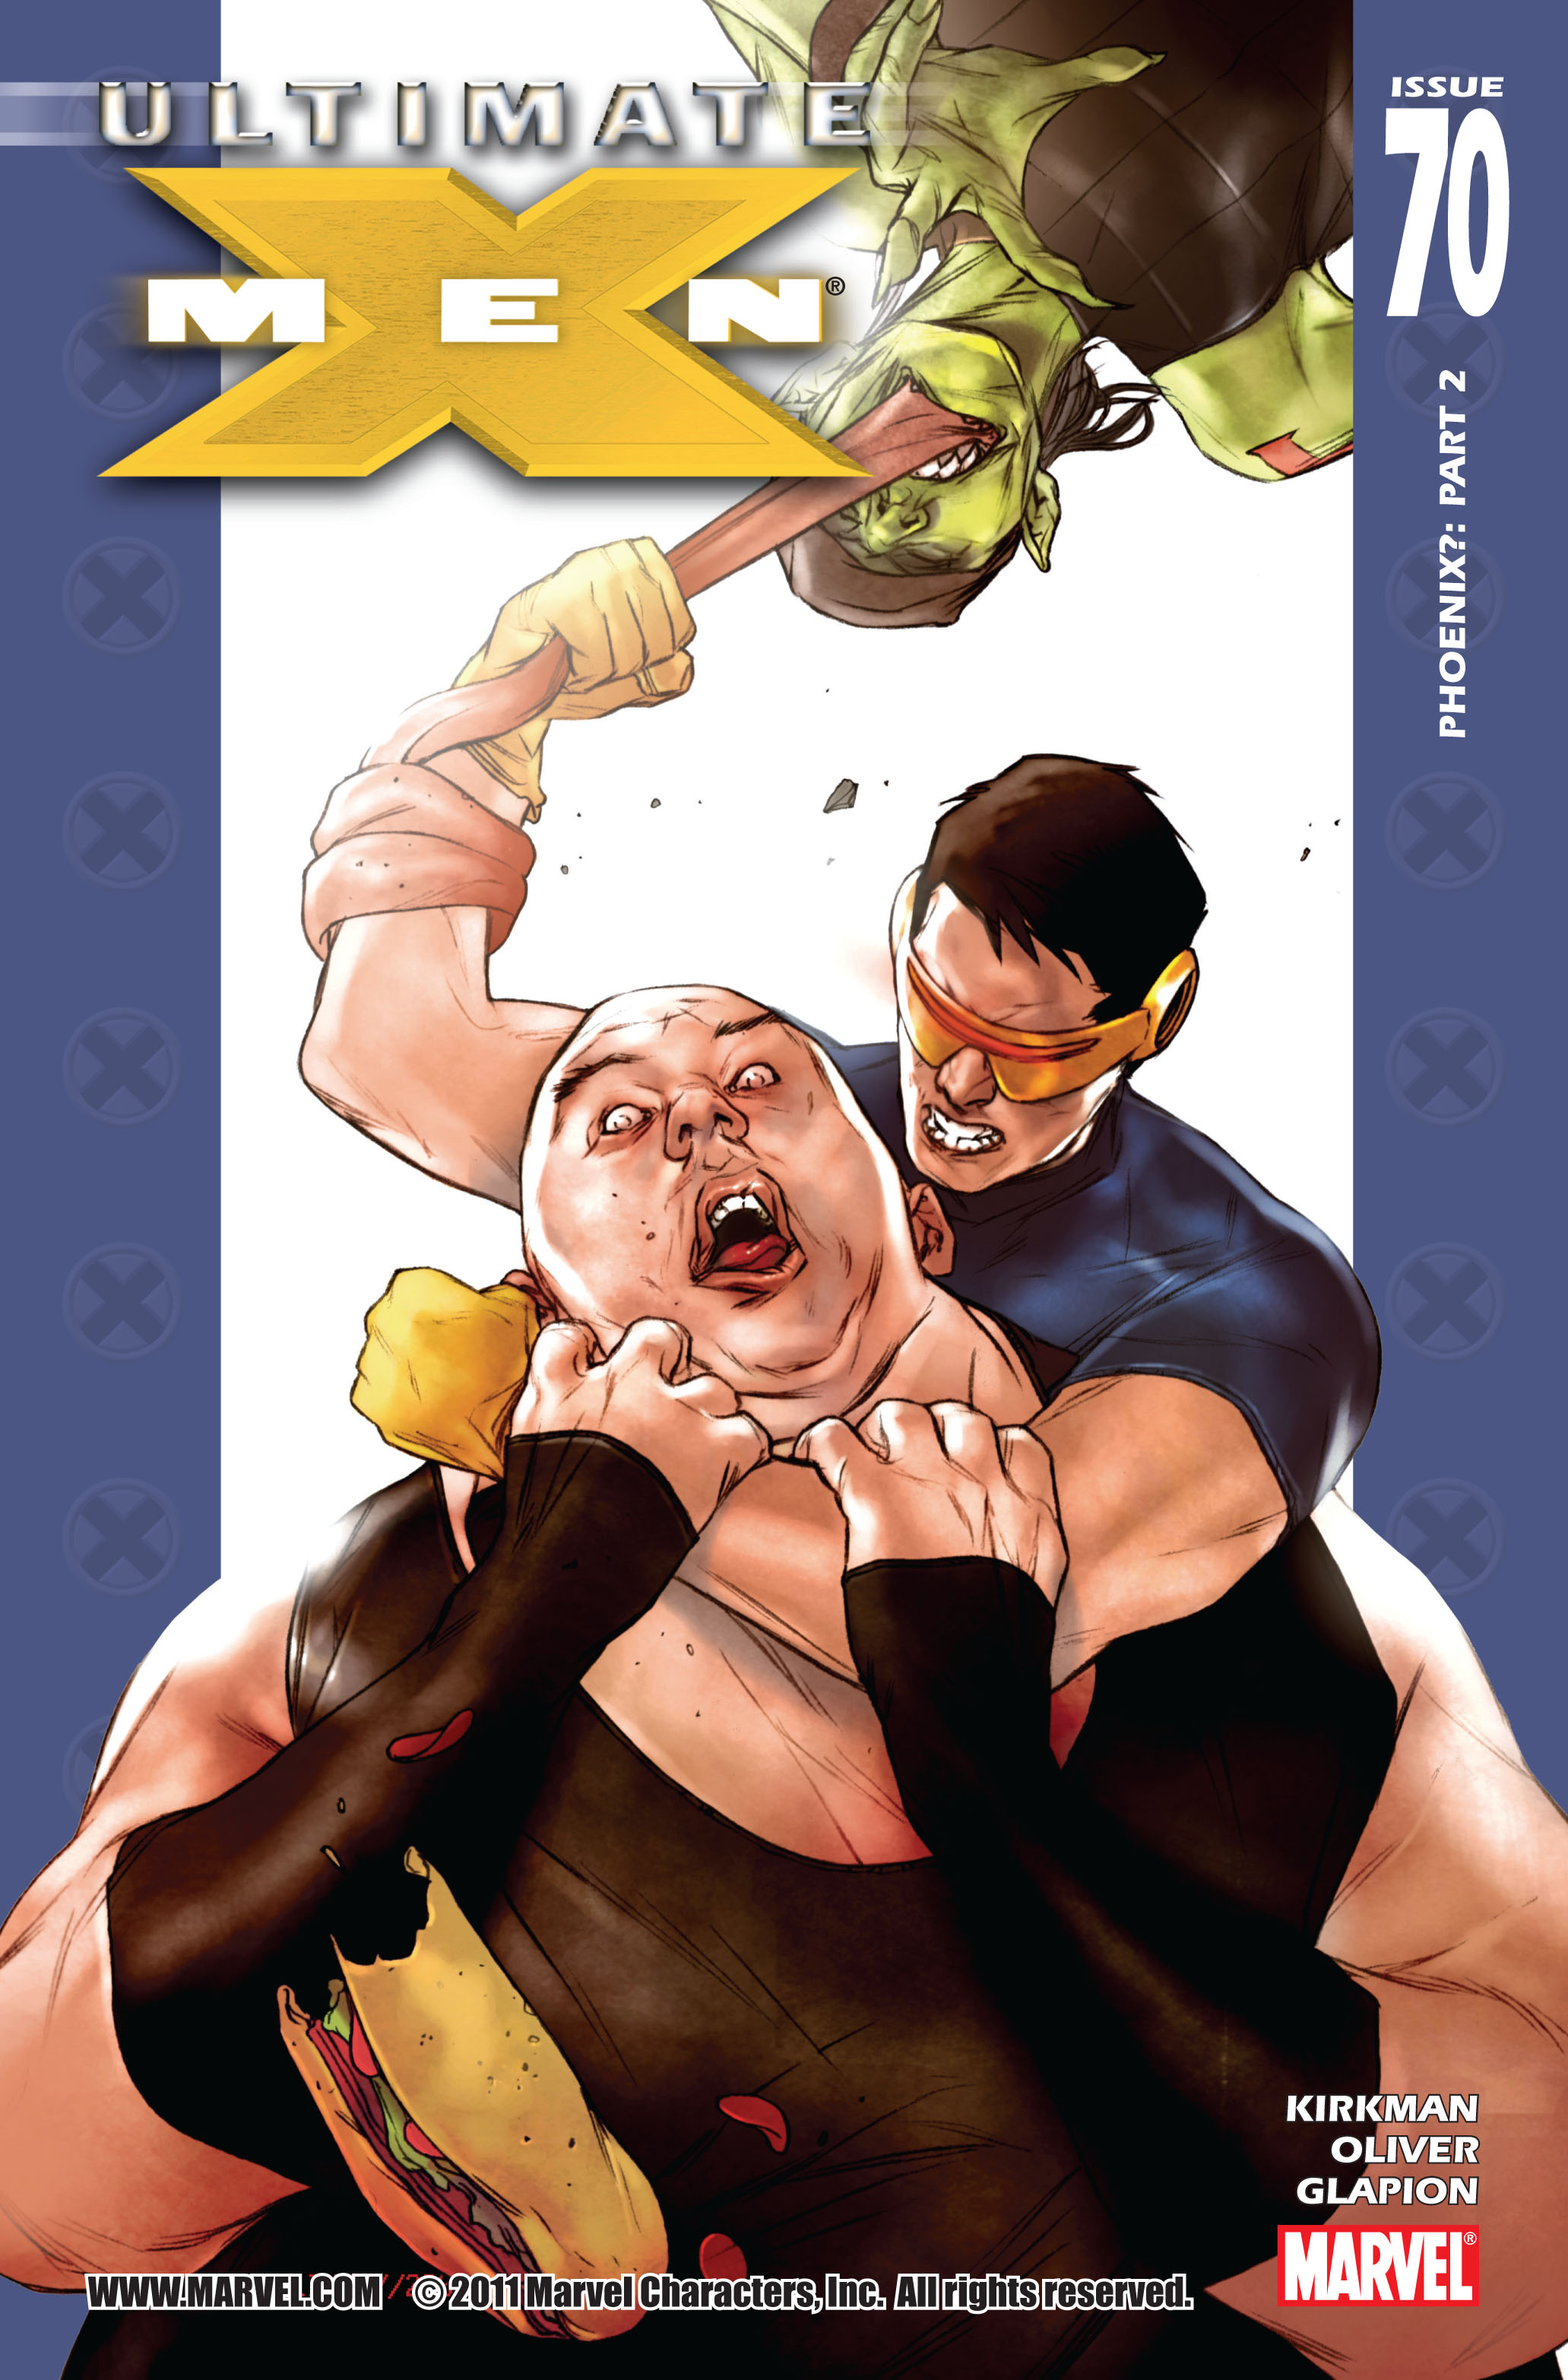 Read online Ultimate X-Men comic -  Issue #70 - 1